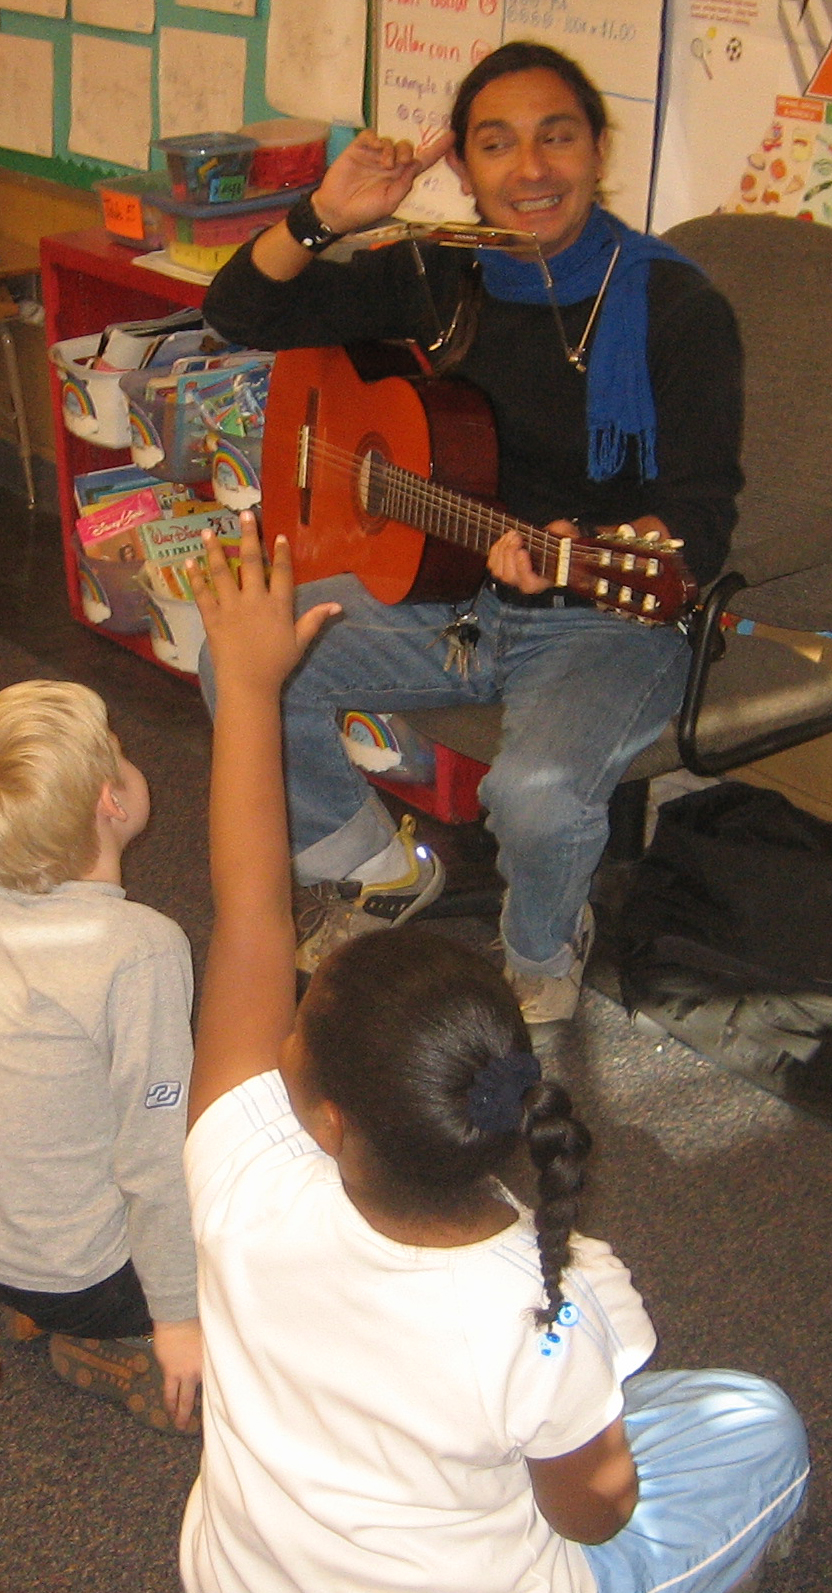 Felix with harmonica and guitar